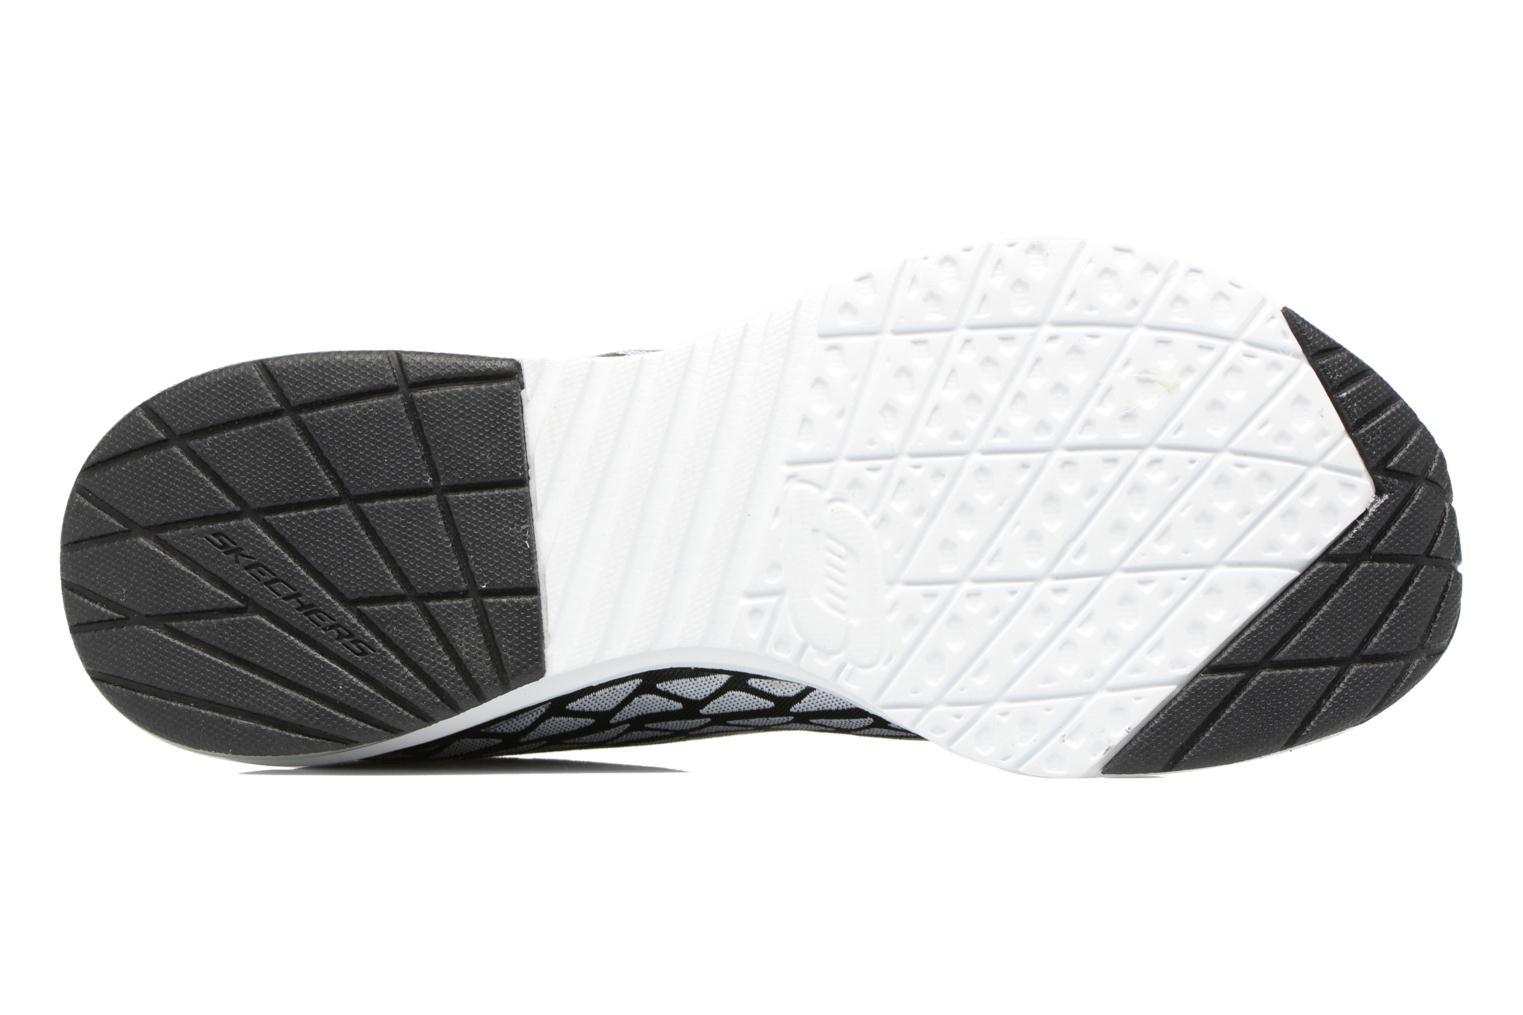 Sport shoes Skechers Skech-Air infinity Free fallin Black view from above